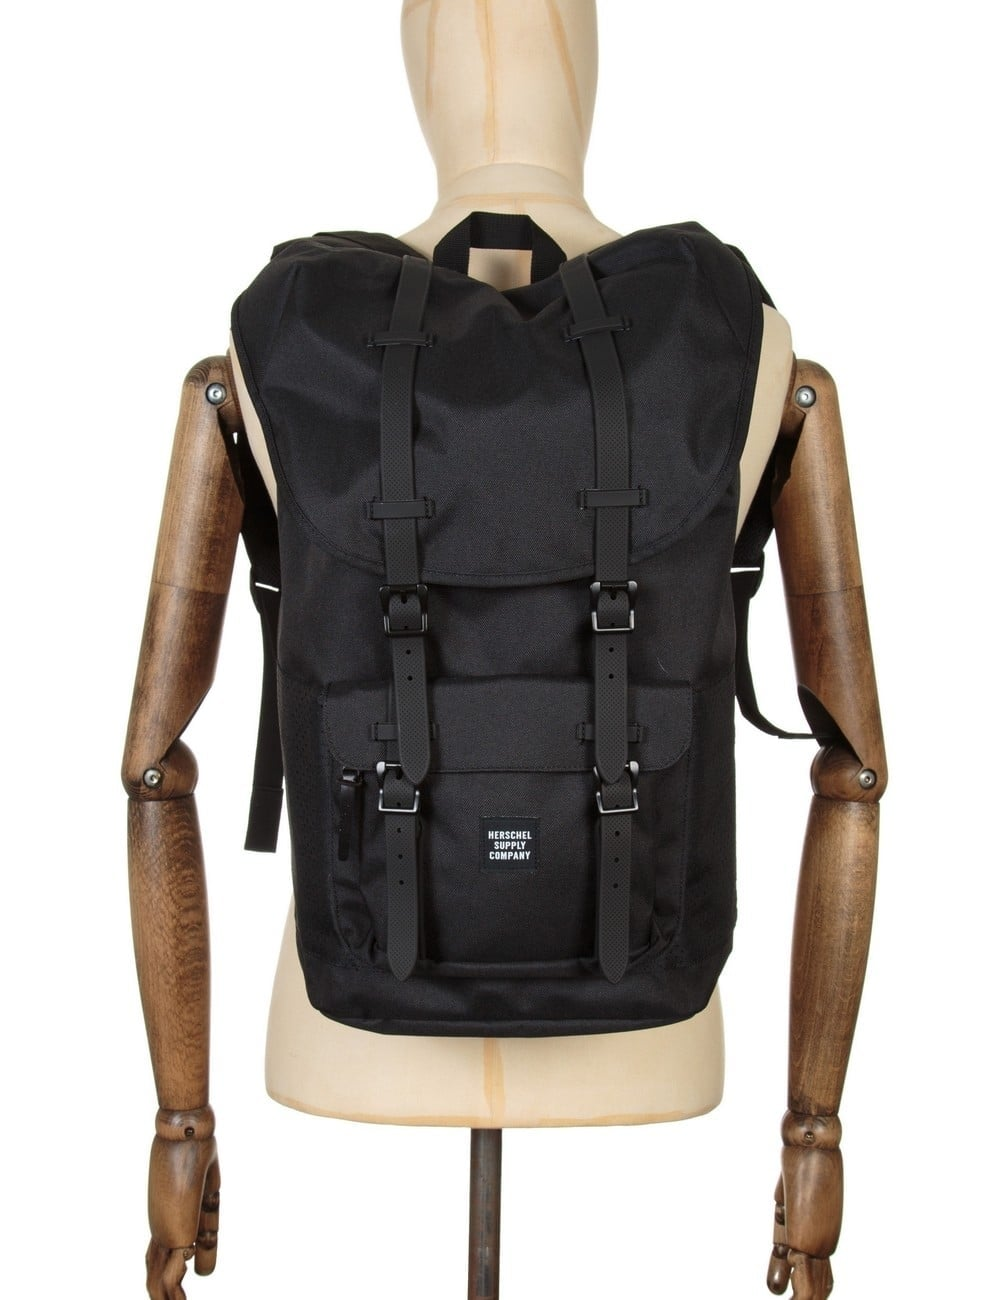 Bags Coach Bags also 12125 besides Bags Harga Motor Yamaha Nmax Non Abs further Steve Madden Bblaze Studded Backpack Black moreover Lv Mini Backpack 56d39f06f0137dec2a05d5dd. on ray ban backpack